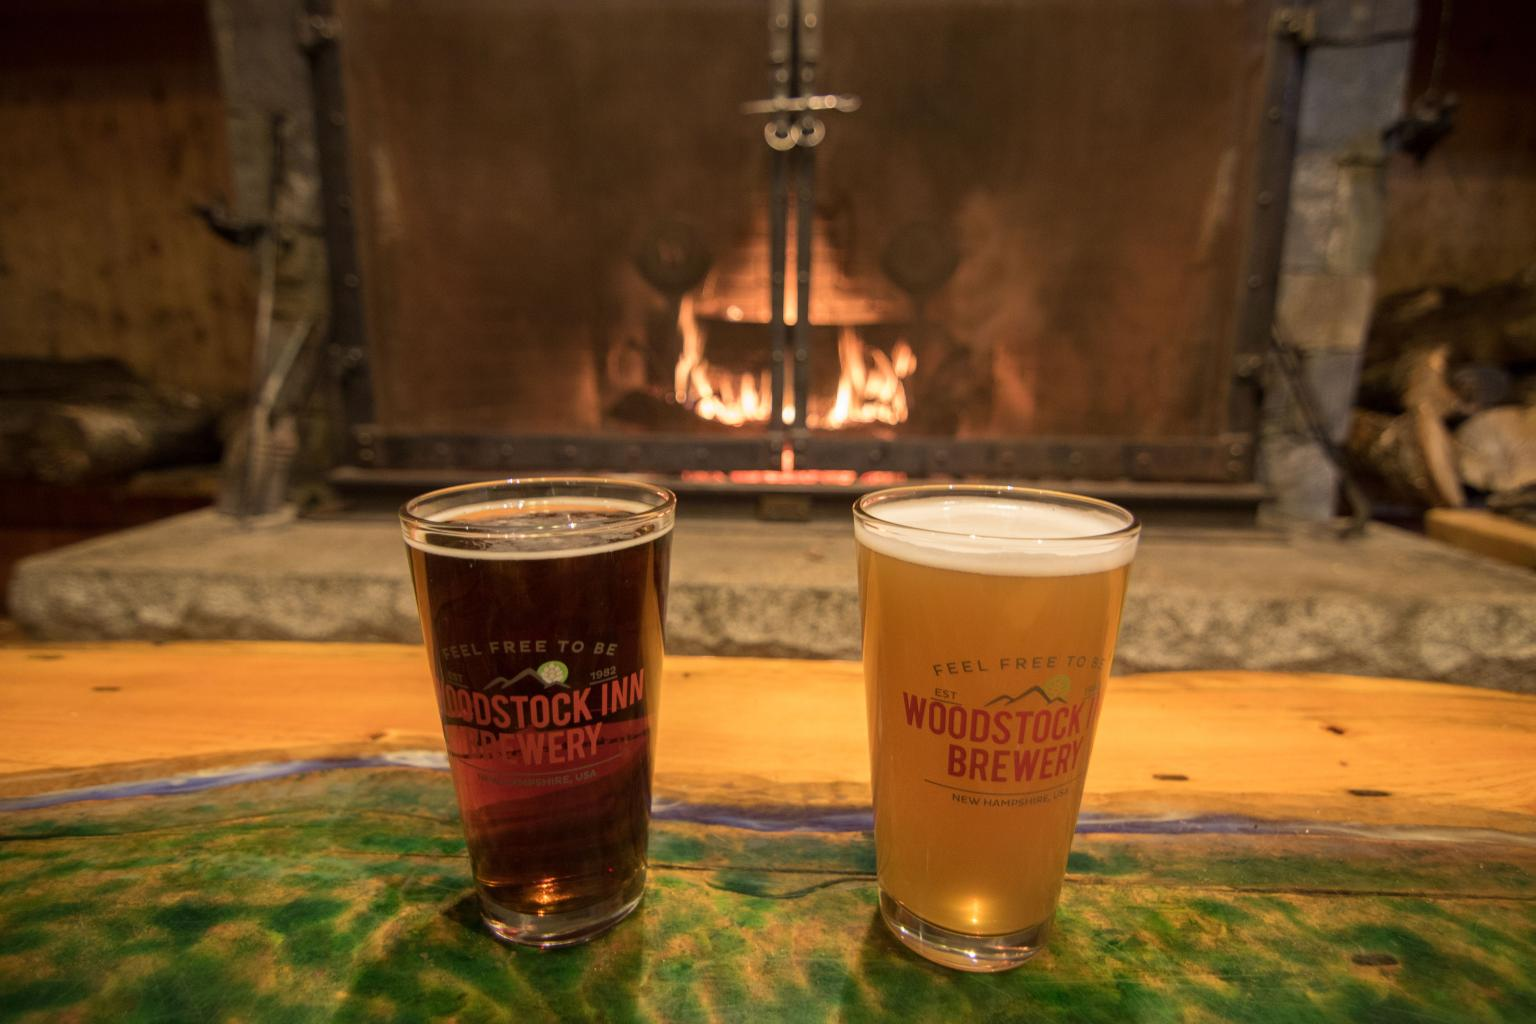 Woodstock Inn Brewery - Pints